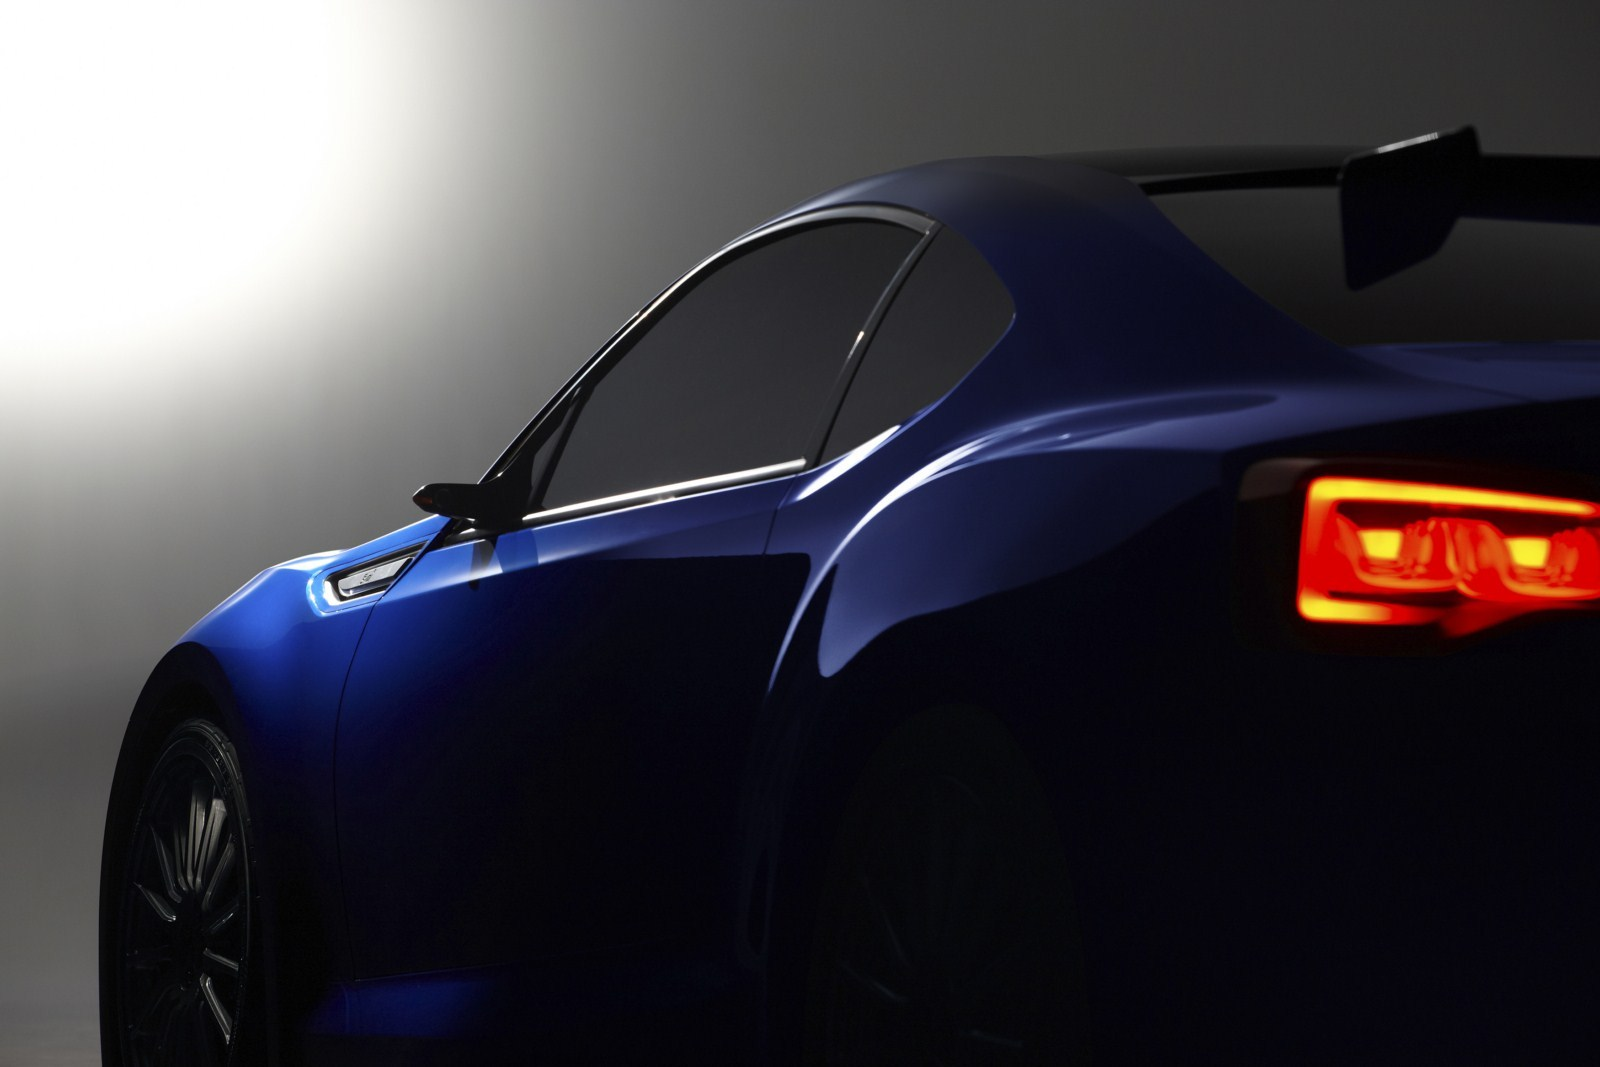 The New Upcoming 2015 Subaru BRZ Turbo 1024 X 768 Wallpaper Car Available In HD Resolution And Widescreen For Your Device